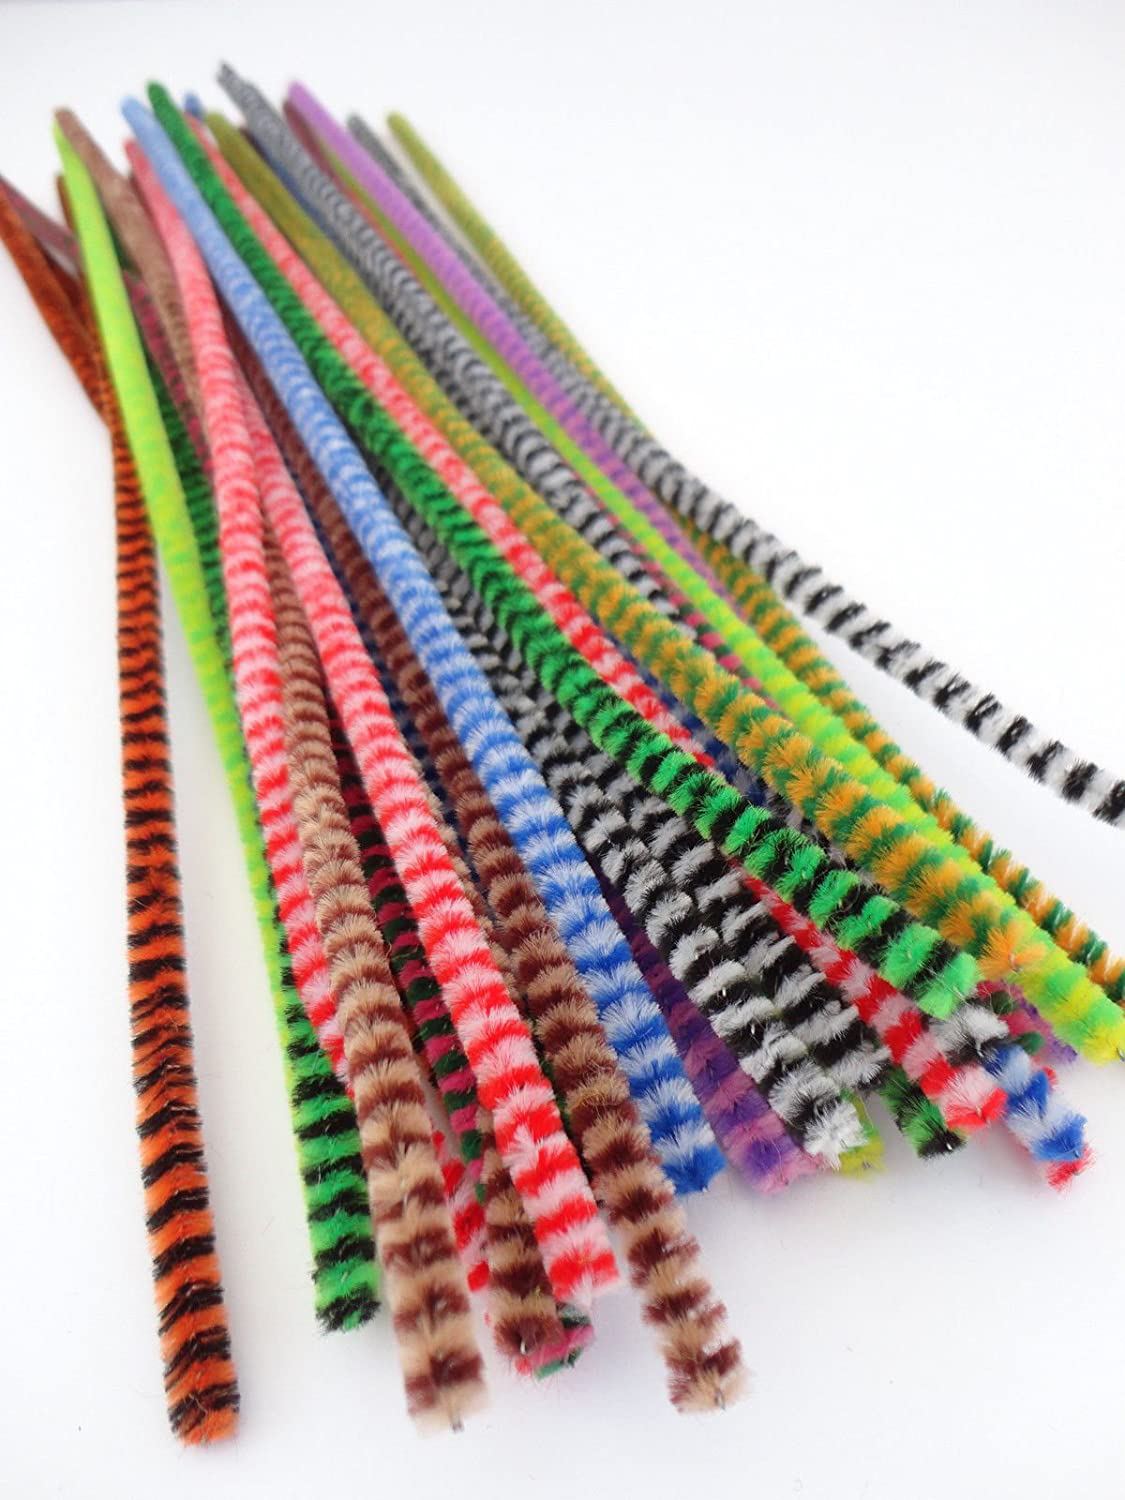 25 Or 50 Chenille Tiger Tails Stripe Craft Pipe Cleaners Stems - 12